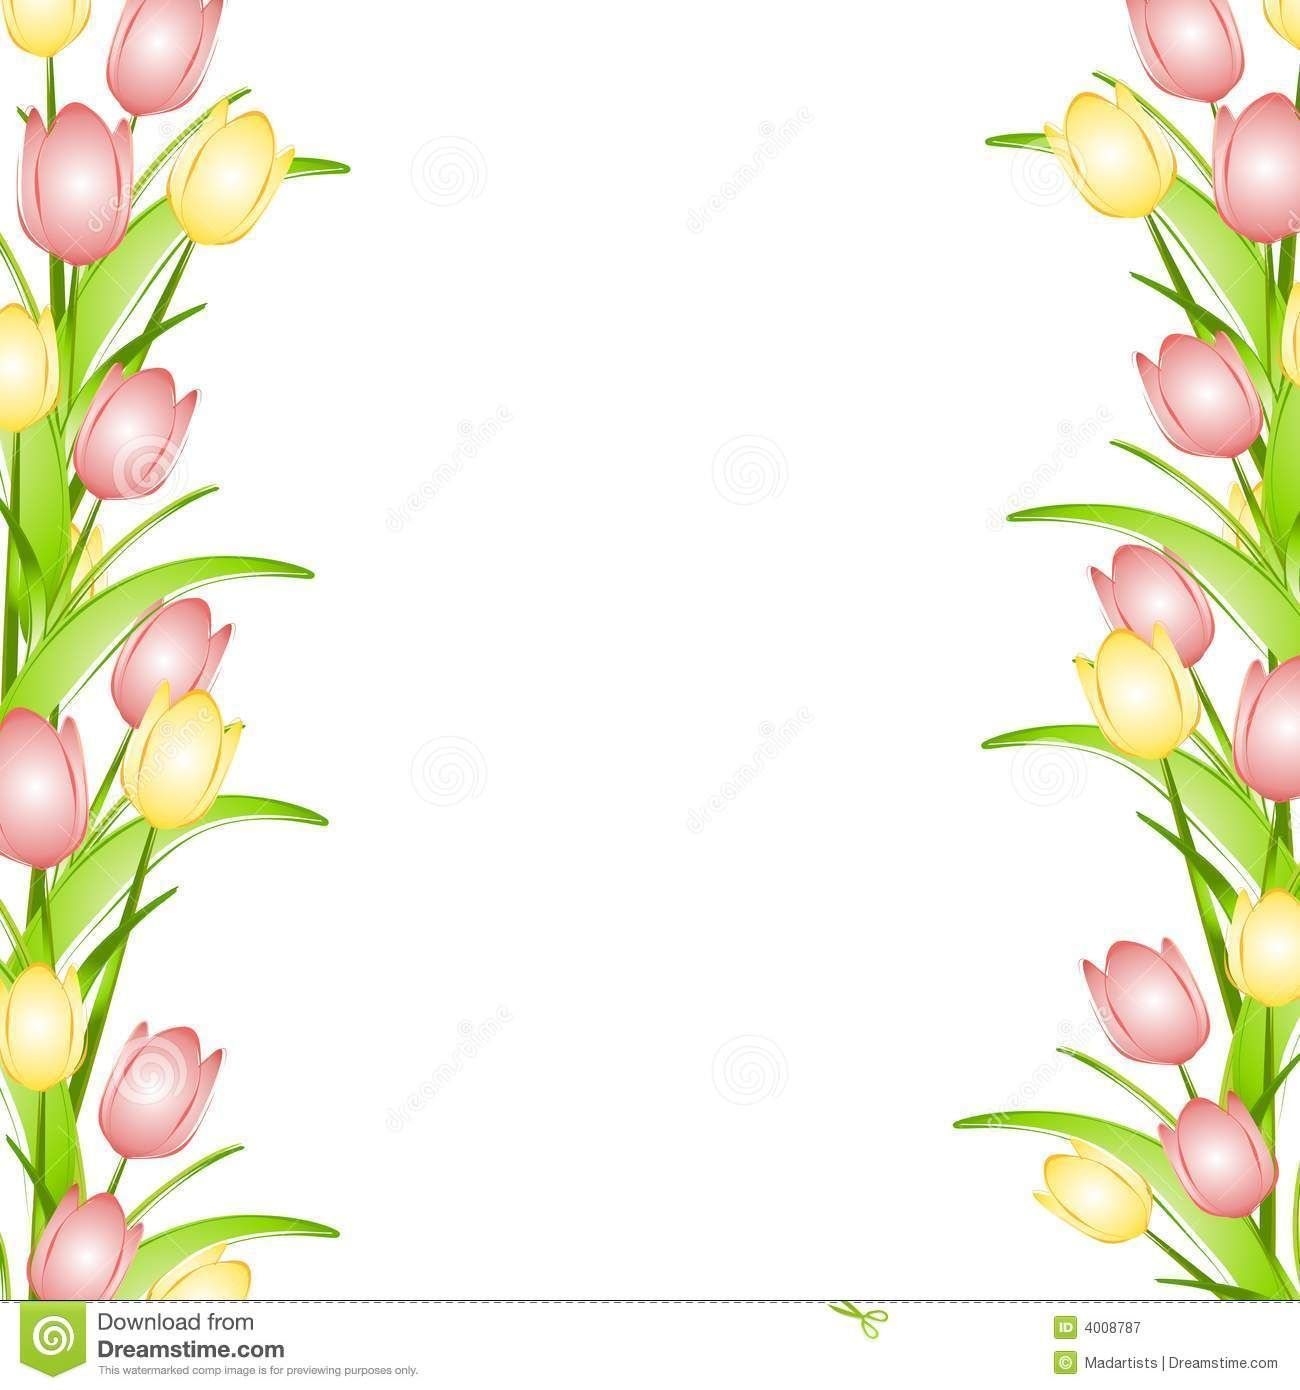 graphic royalty free library Page clipart spring. Free borders and backgrounds.